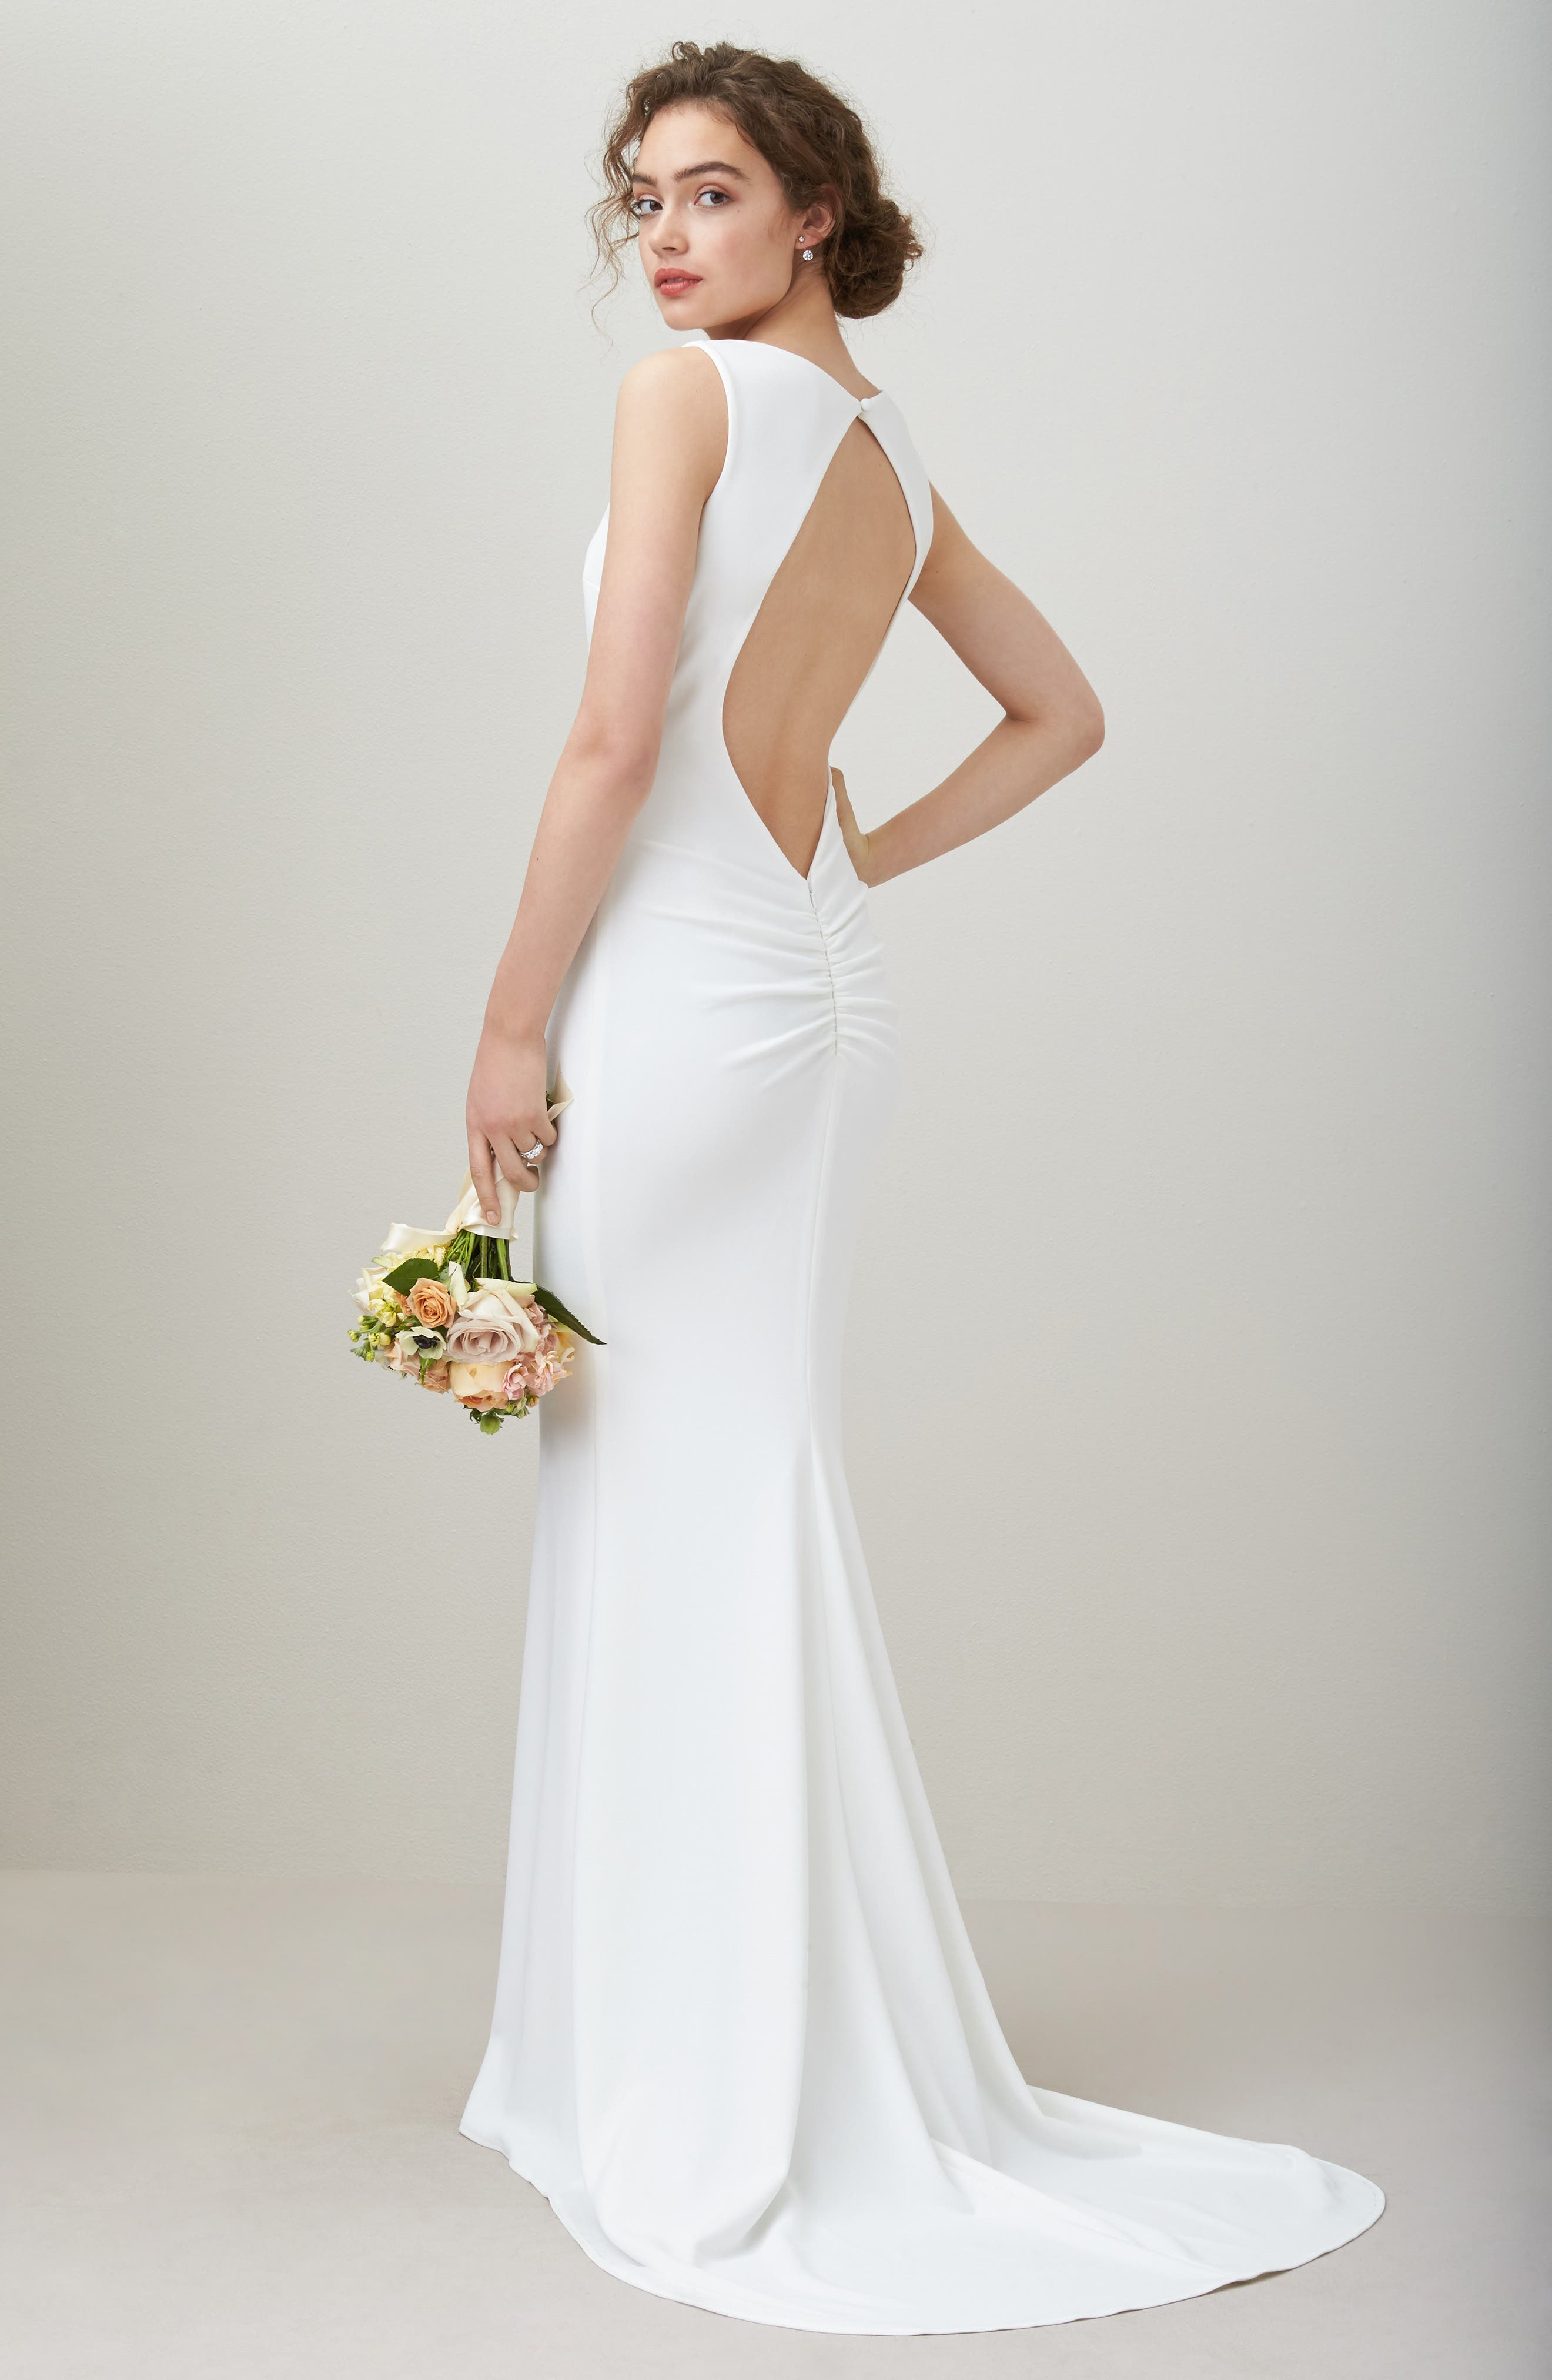 Theo Low Back Crepe Mermaid Gown,                             Alternate thumbnail 10, color,                             IVORY